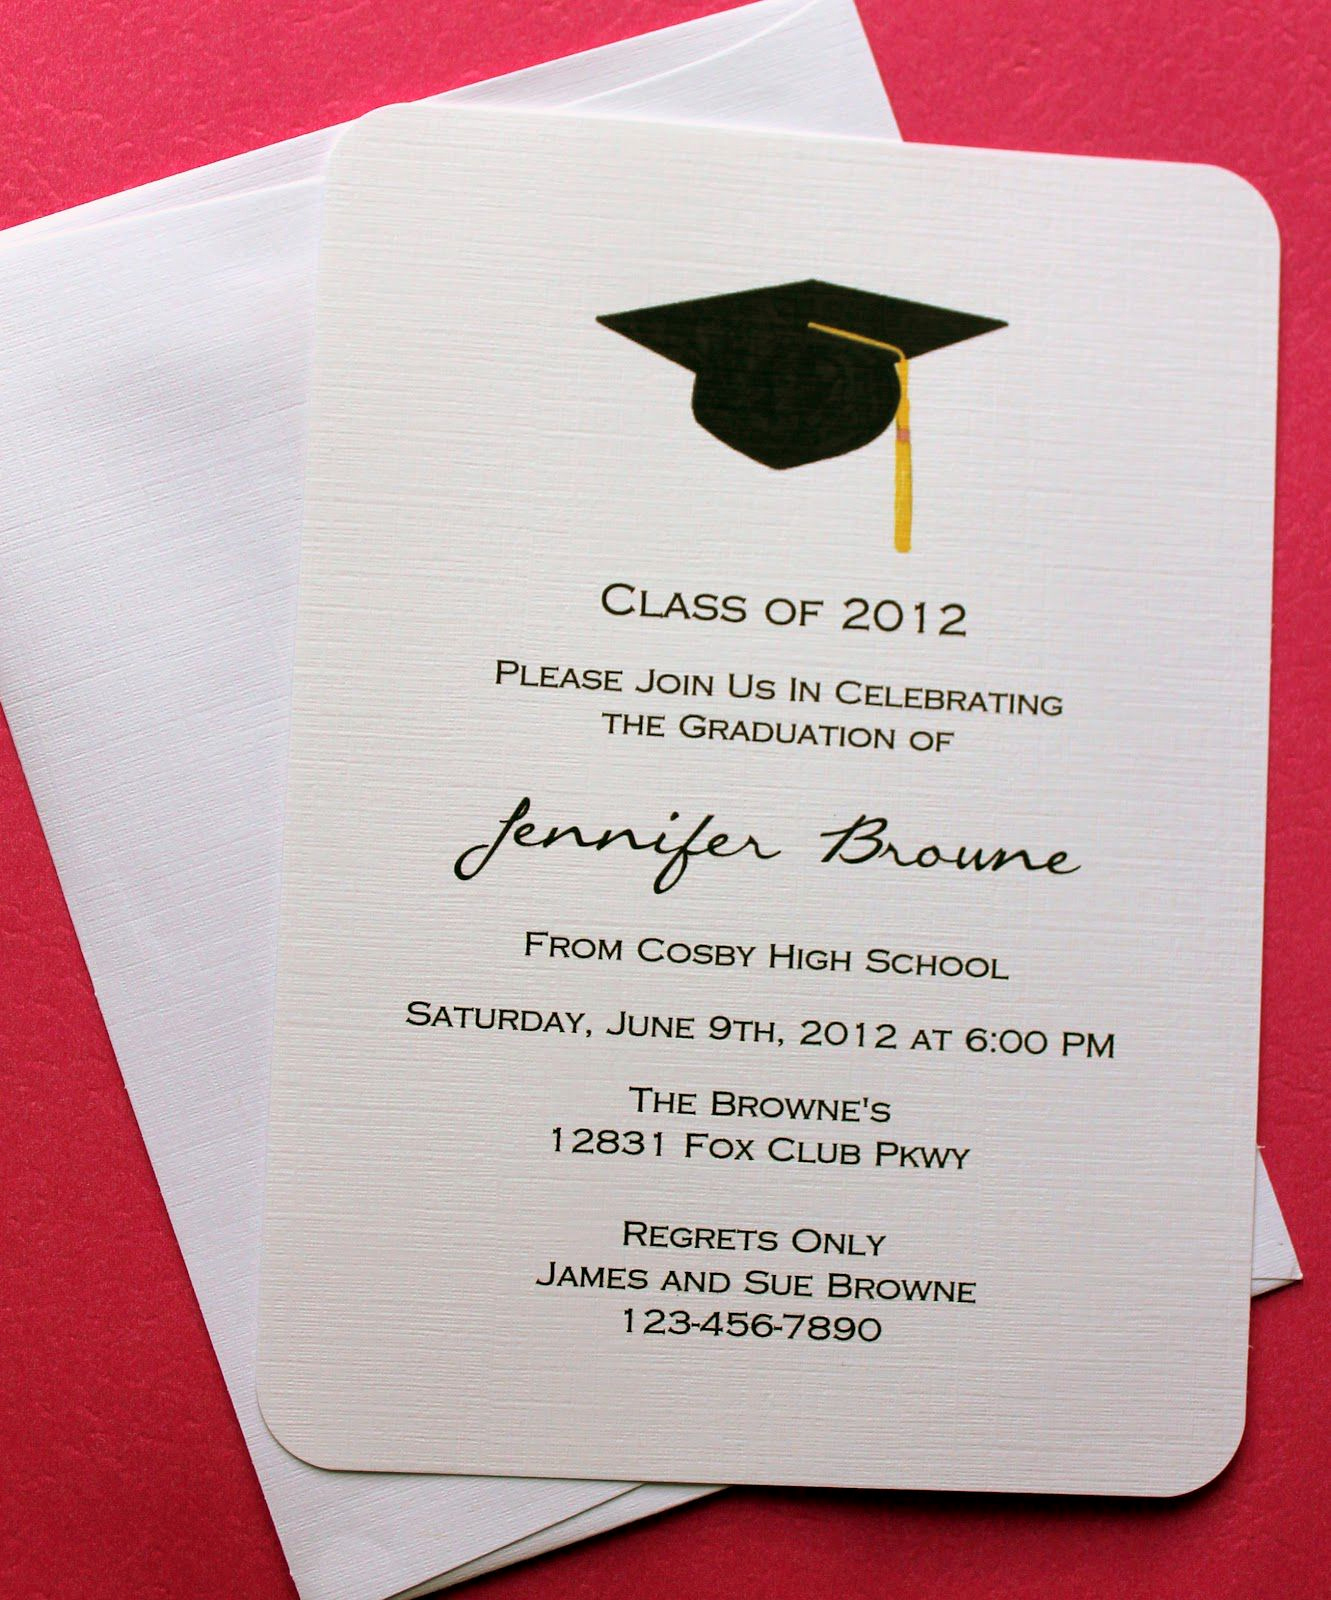 Graduation Invitation Card Template New Graduation Invitation Template Graduation Invitation